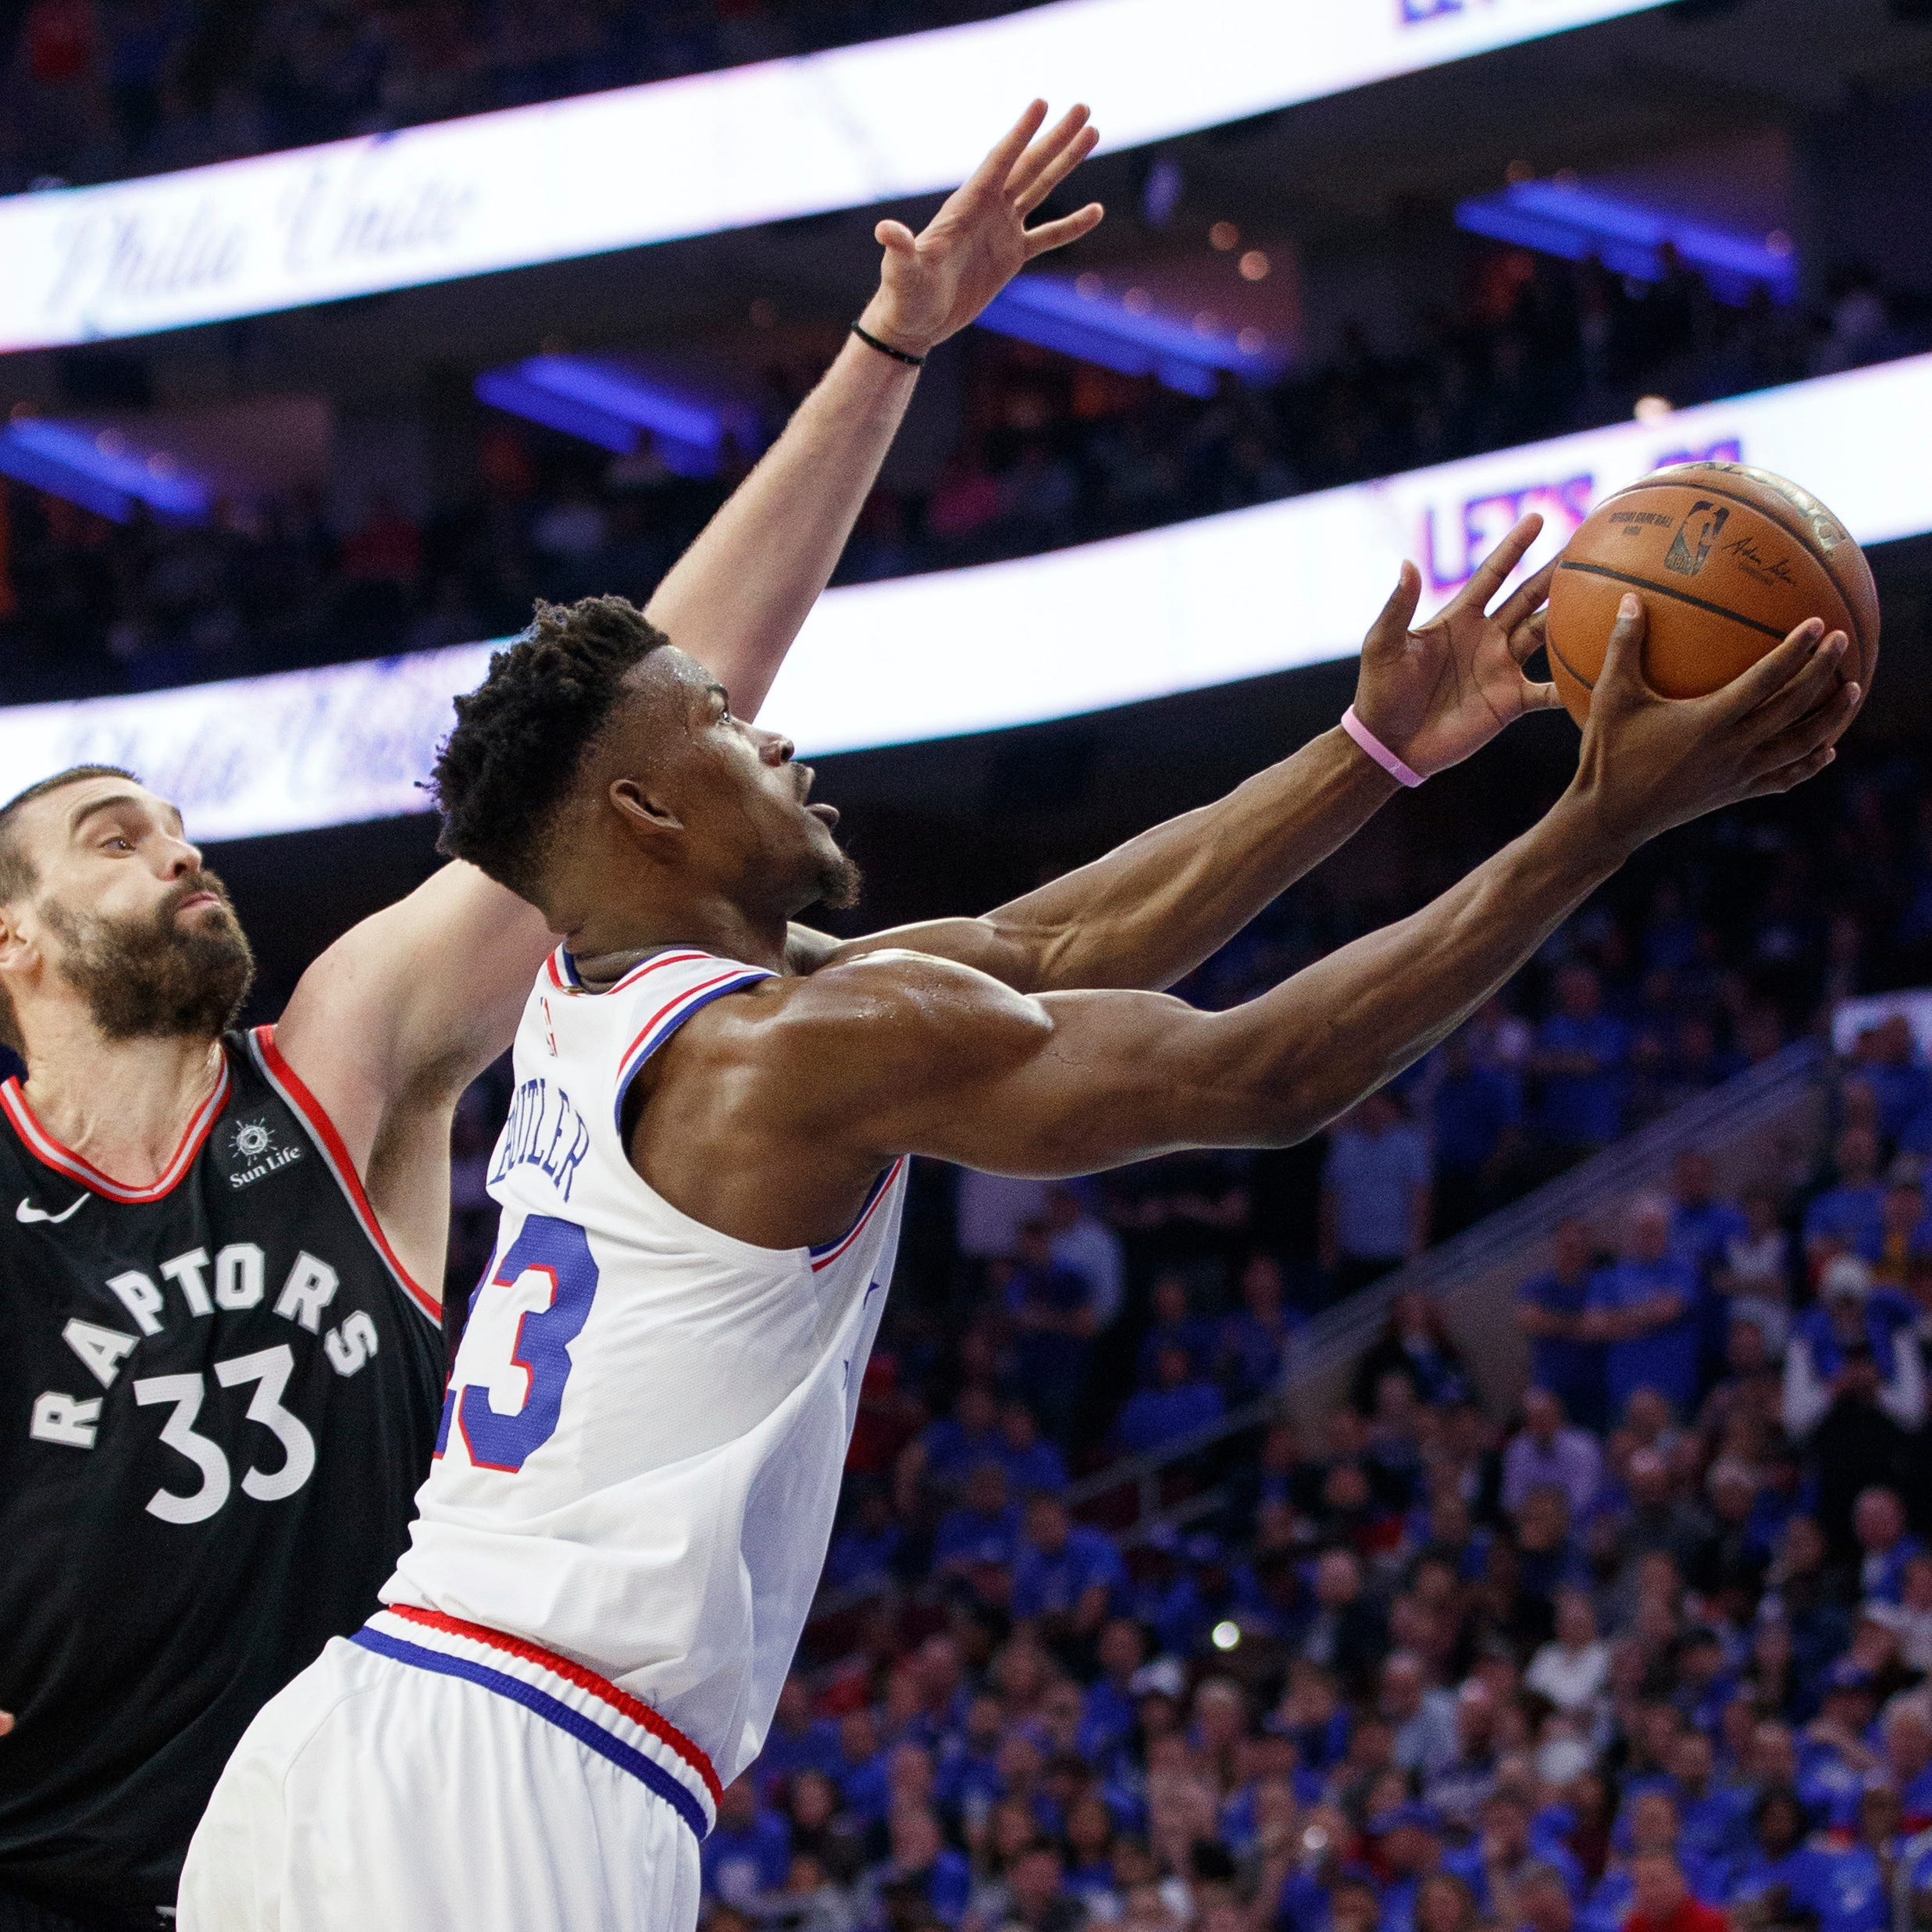 Thursday's NBA playoffs: Embiid, 76ers rout Raptors to take 2-1 lead